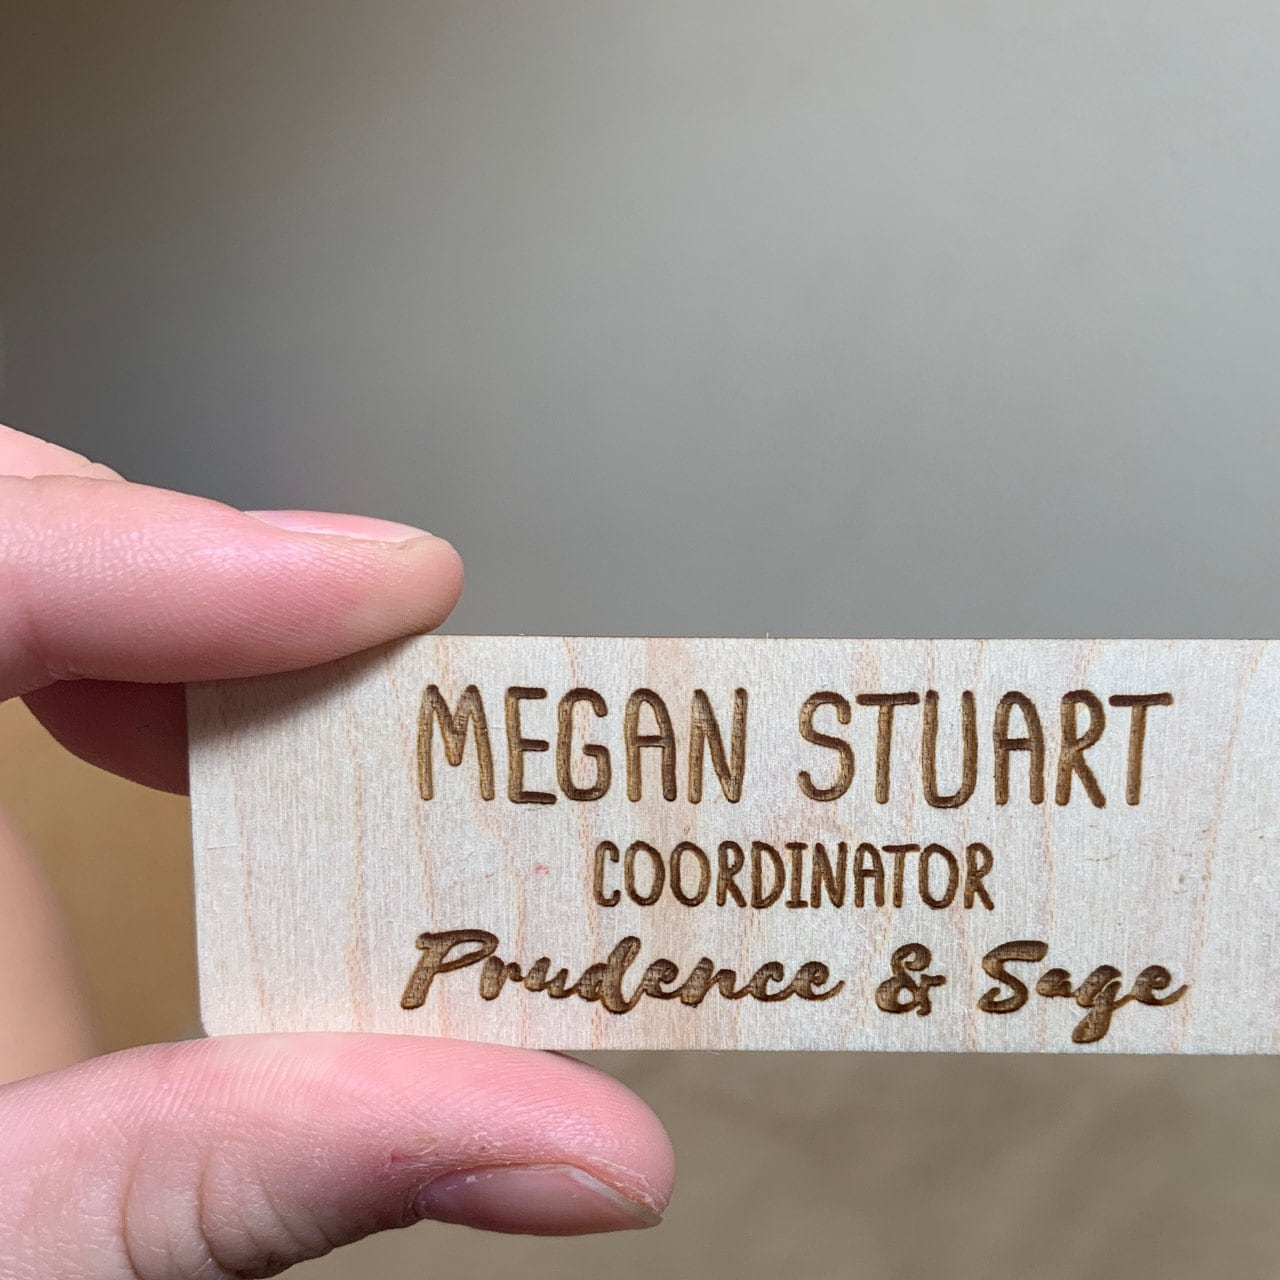 Megan Stuart added a photo of their purchase